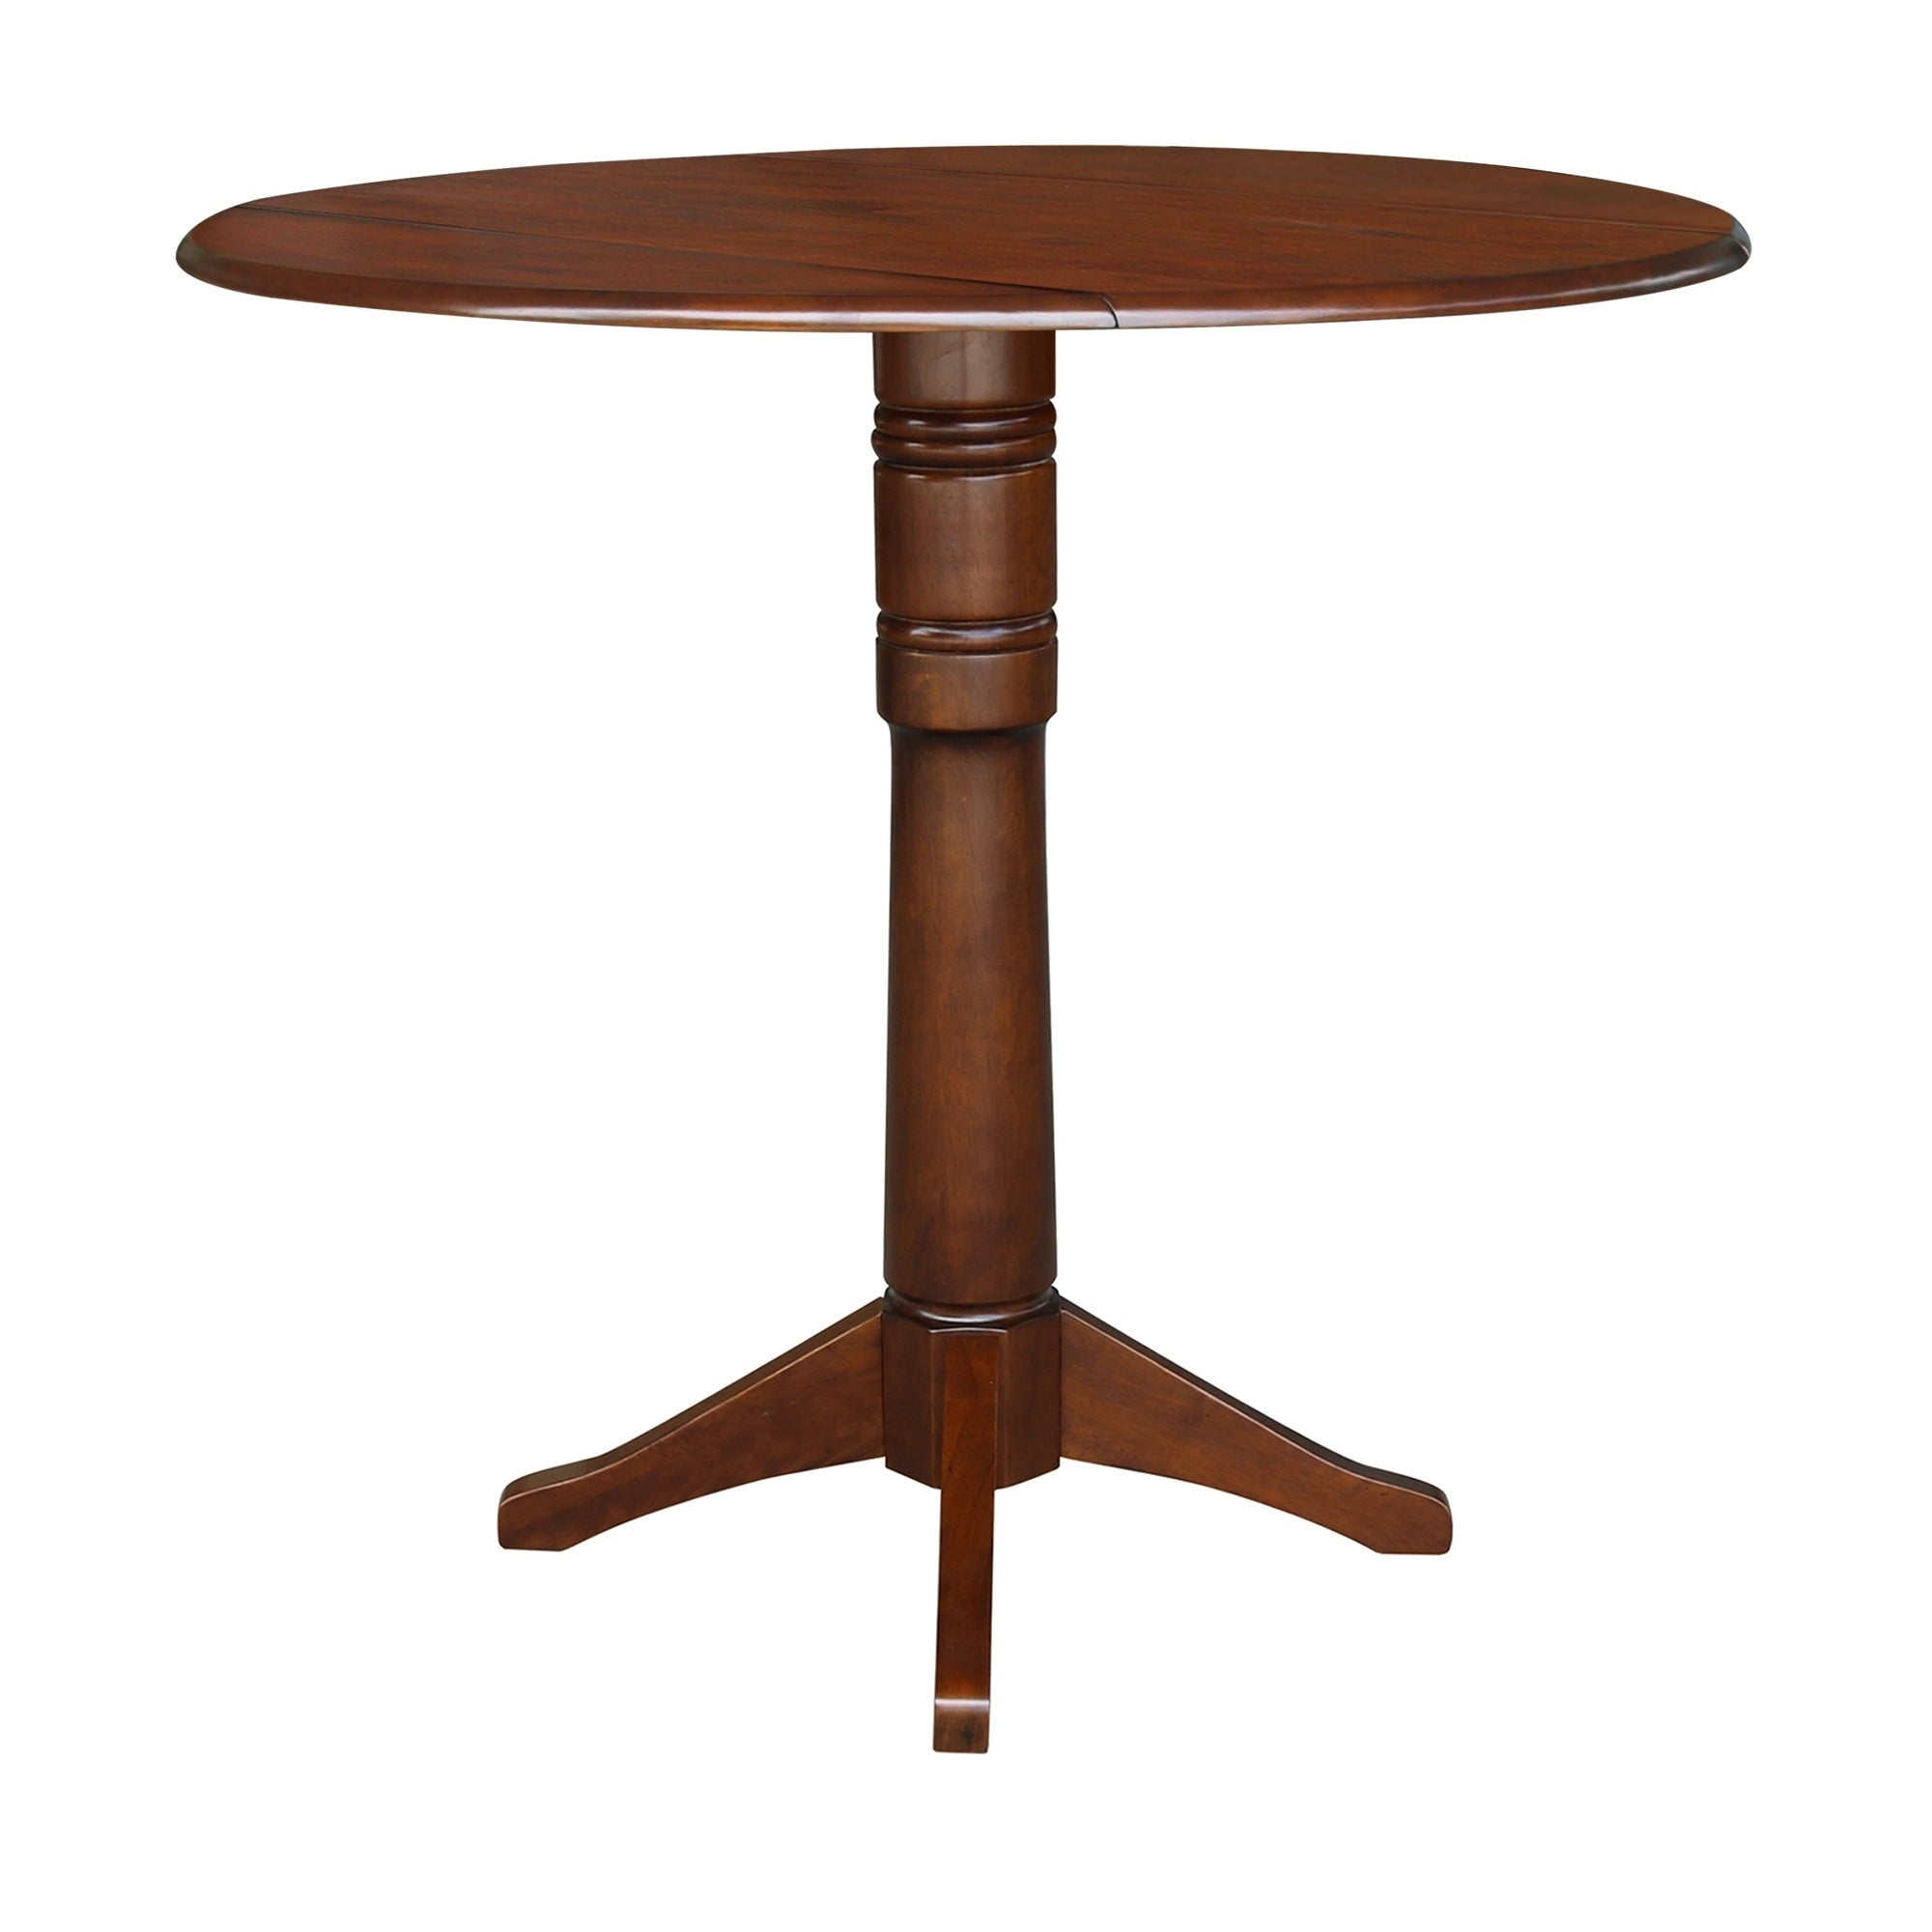 Alamo Transitional 4 Seating Double Drop Leaf Round Casual Dining Tables For Well Known International Concepts Espresso Wood 42 Inch Round Dual Drop Leaf Table (View 14 of 19)